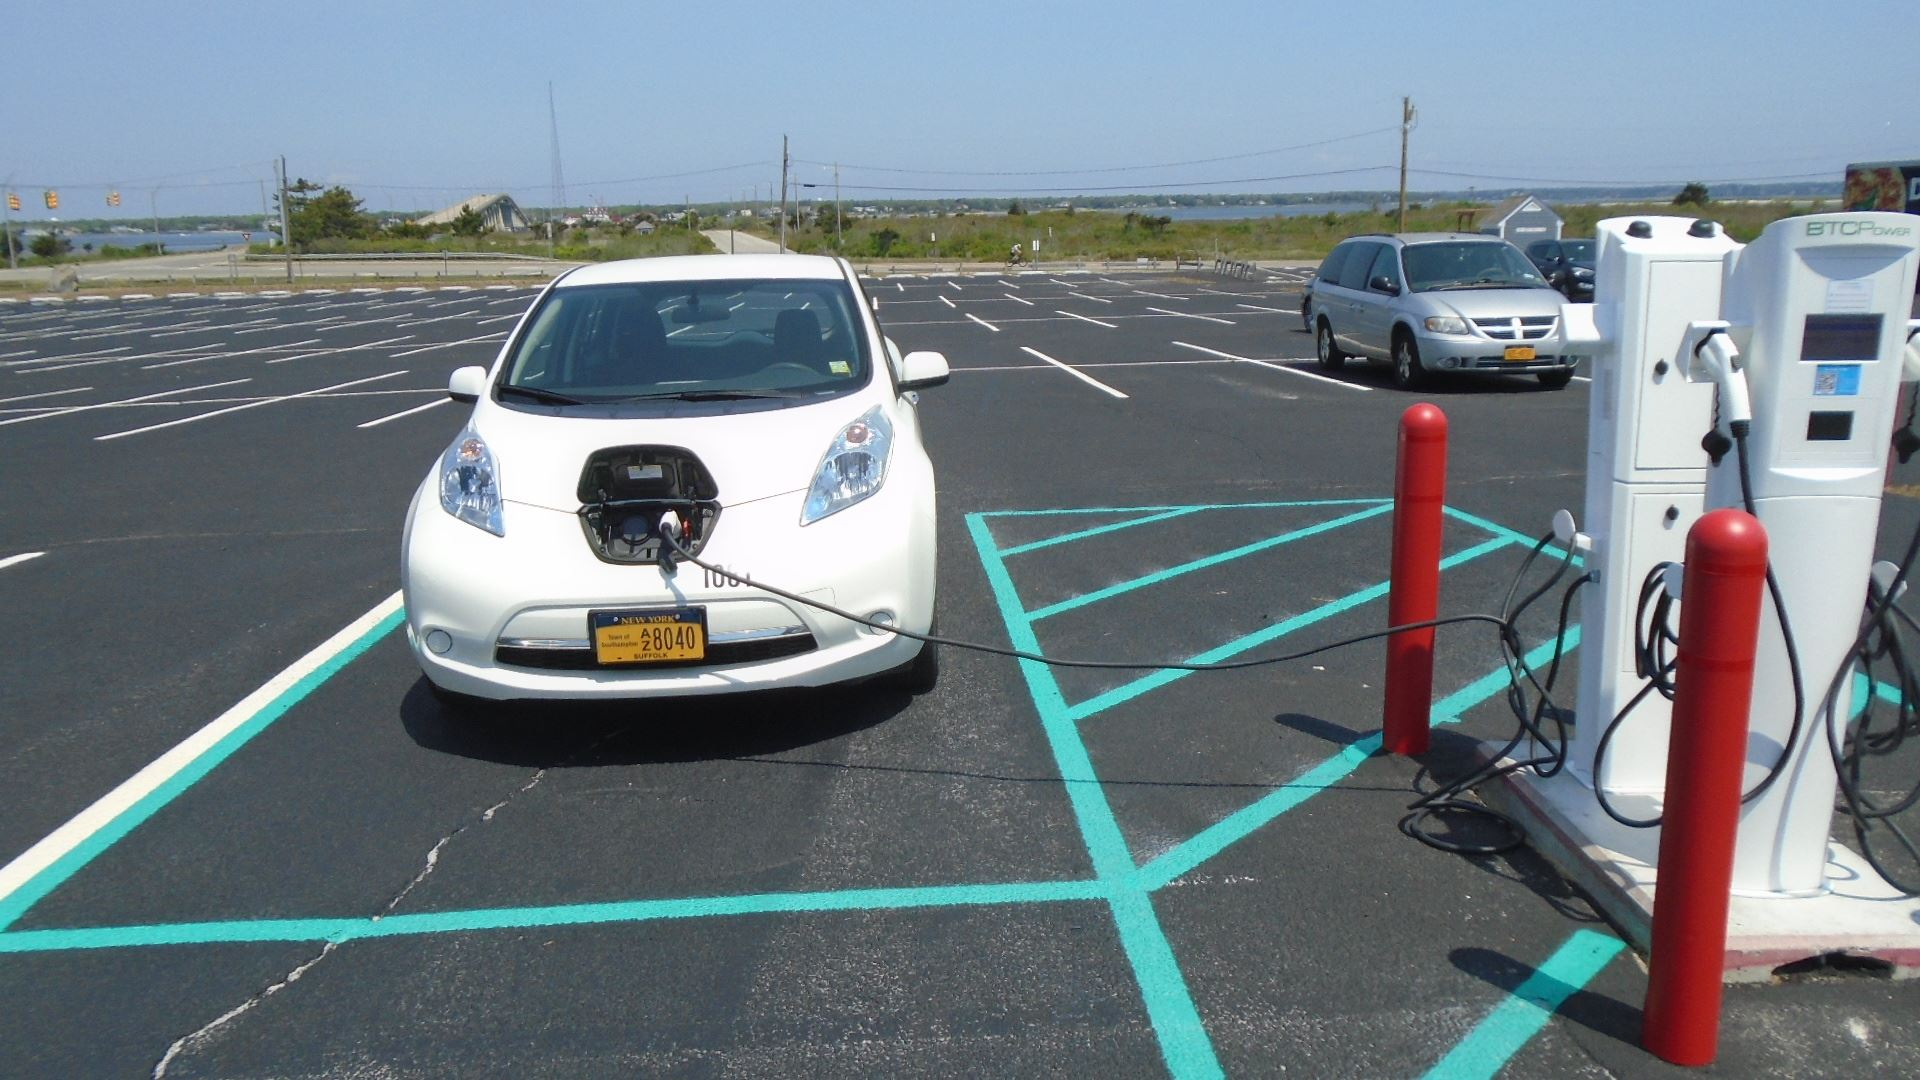 2019 05 30 Ponquogue EV charging station test (2)